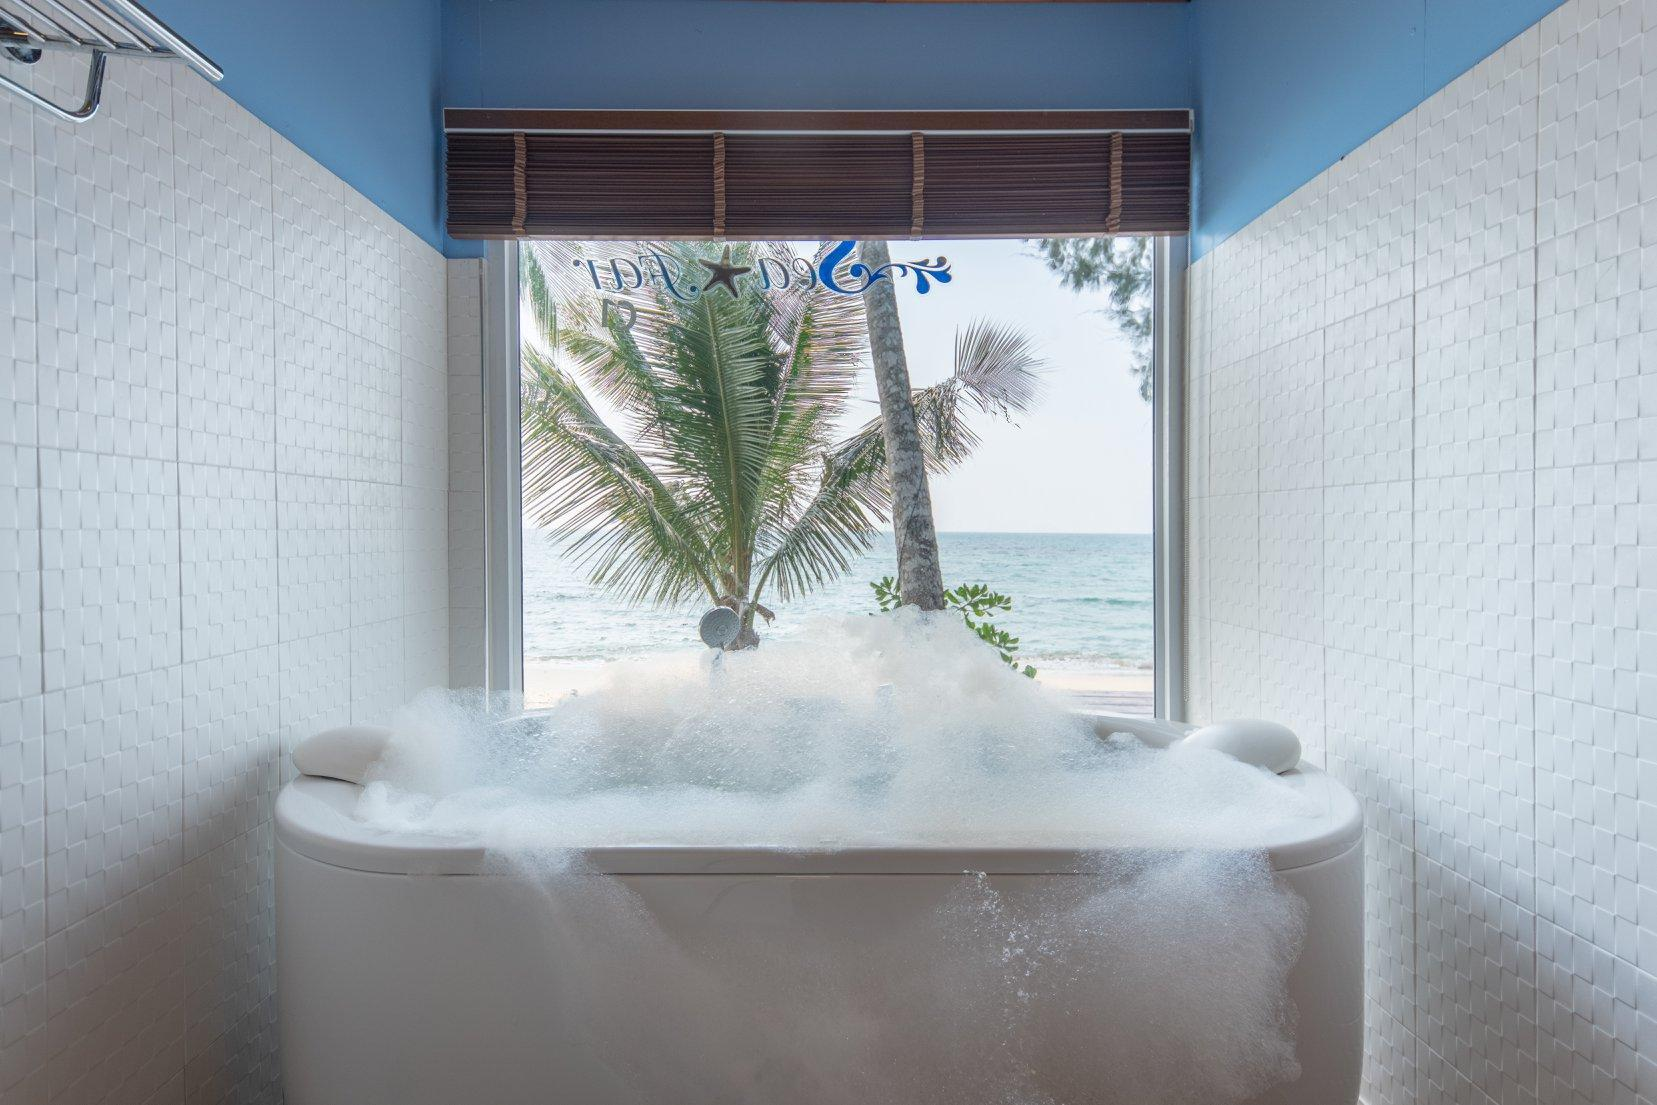 Strand-Bungalow mit Whirlpool (Beach Bungalow with Jacuzzi)